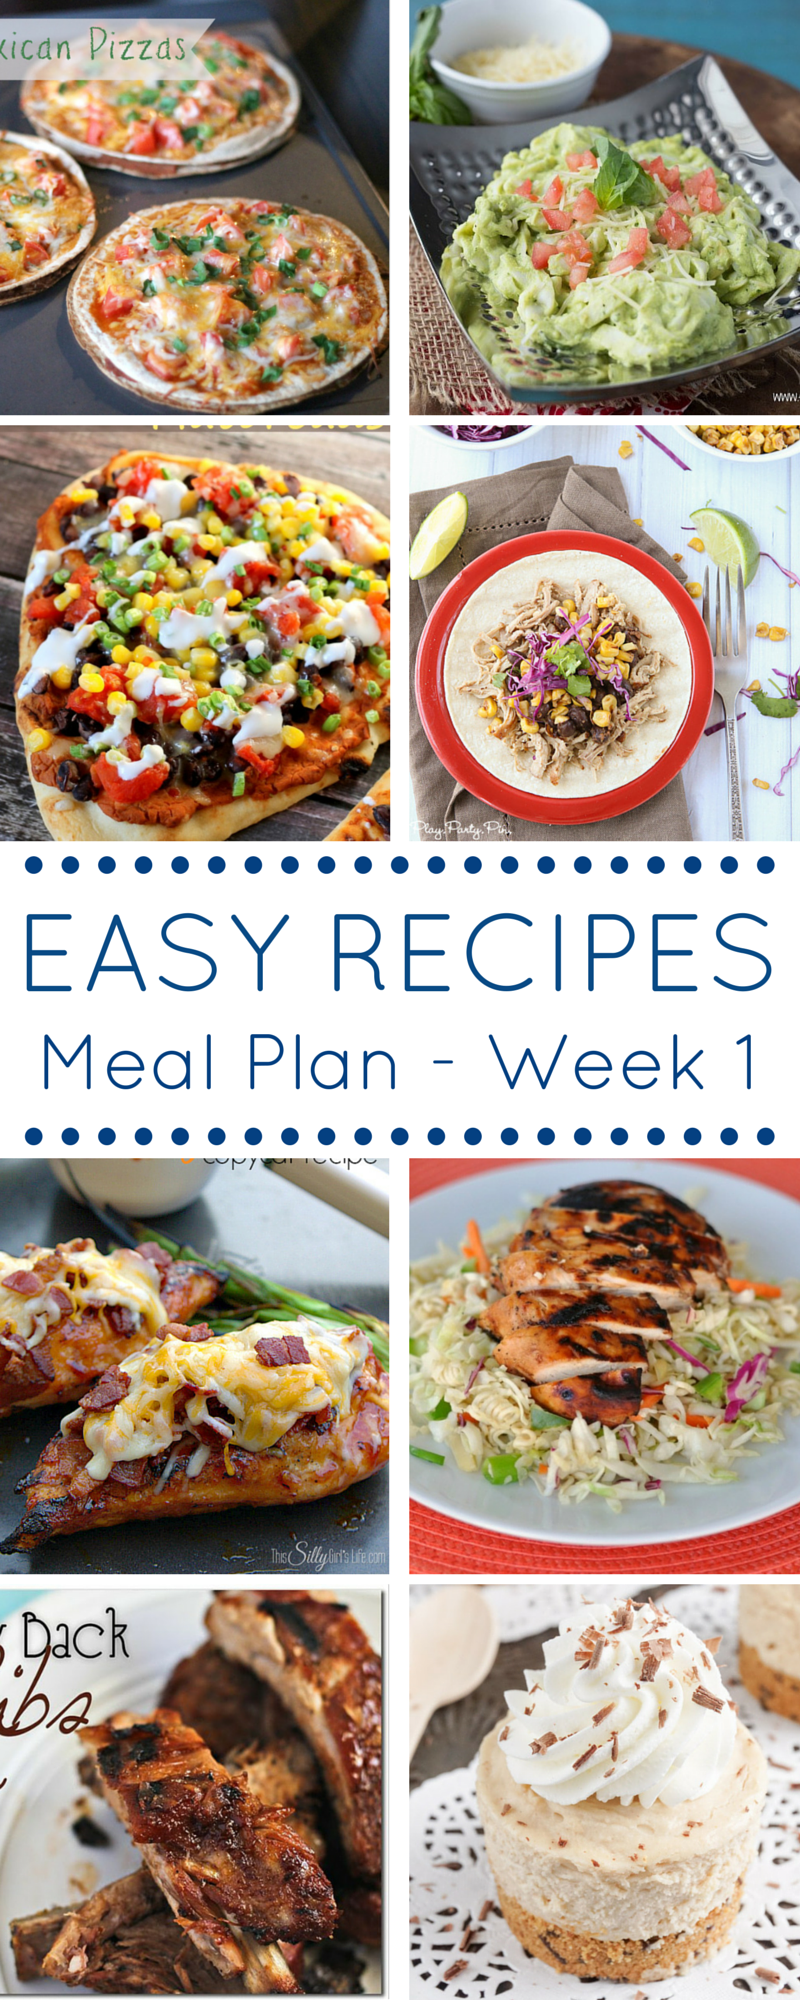 Easy Recipes Weekly Meal Plan - Week 1